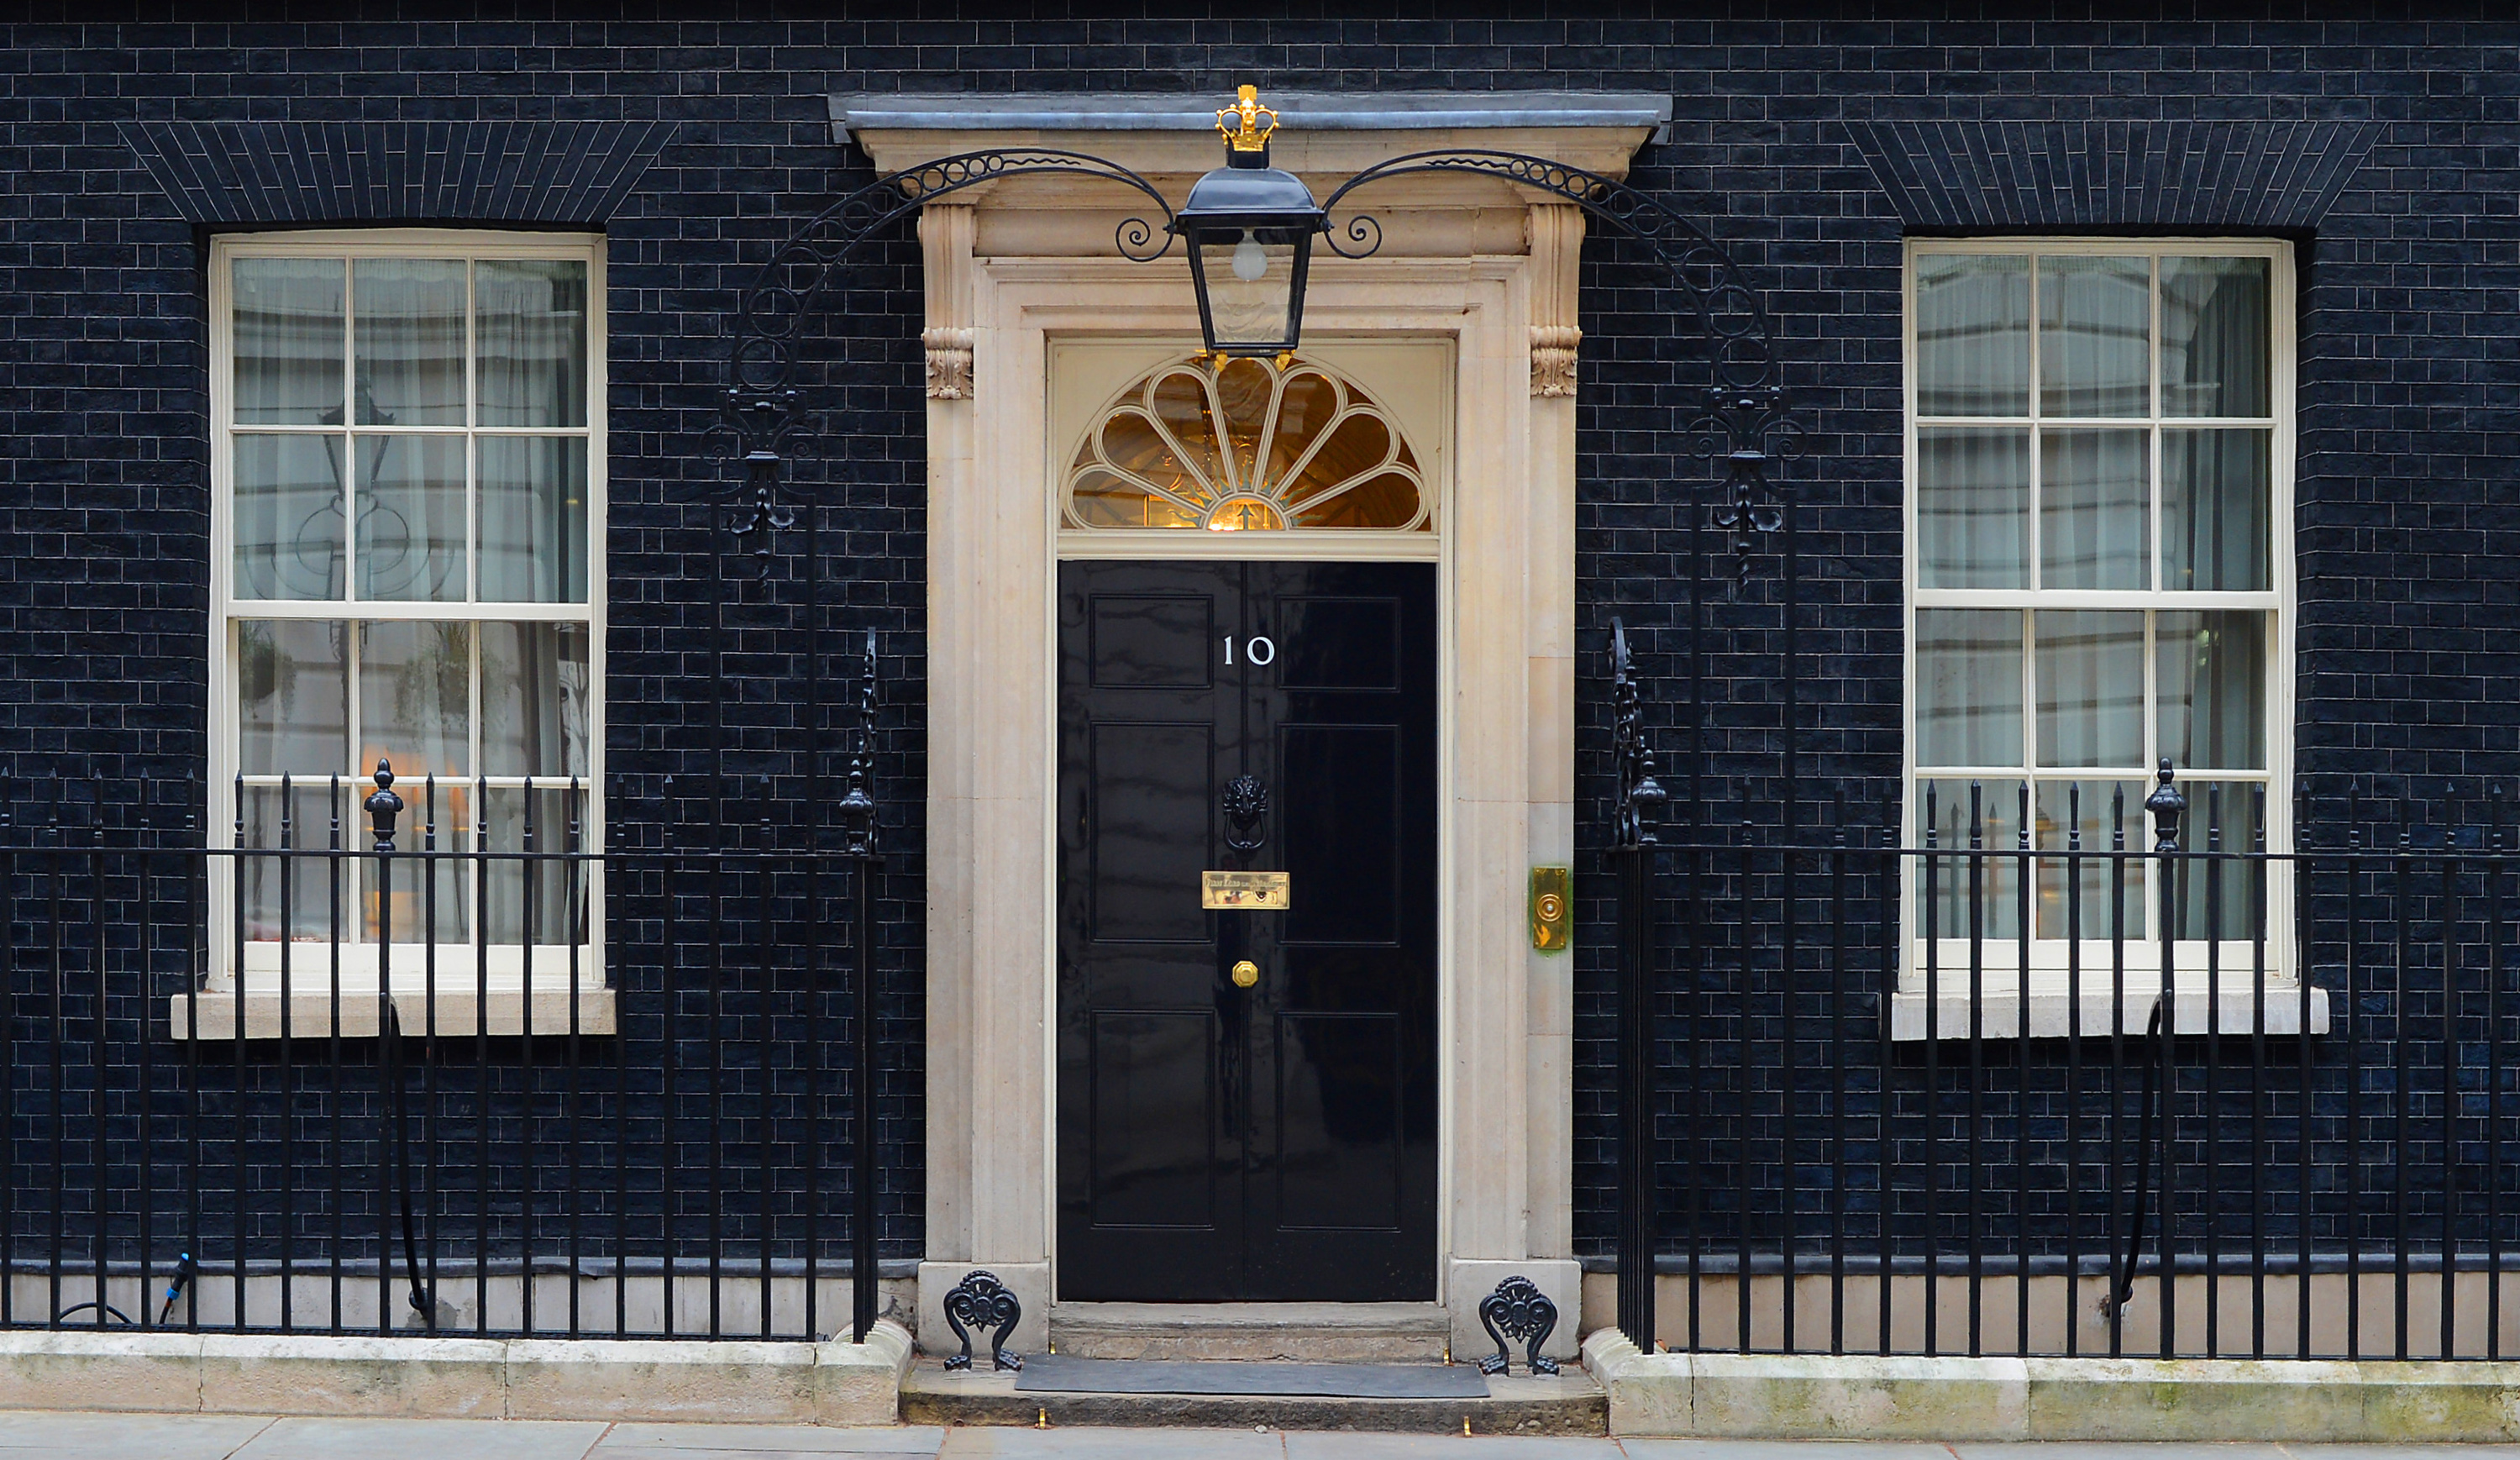 10 Downing Street. MOD 45155532 British ISIS Fighters Release Video Threatening Heathrow And Downing Street